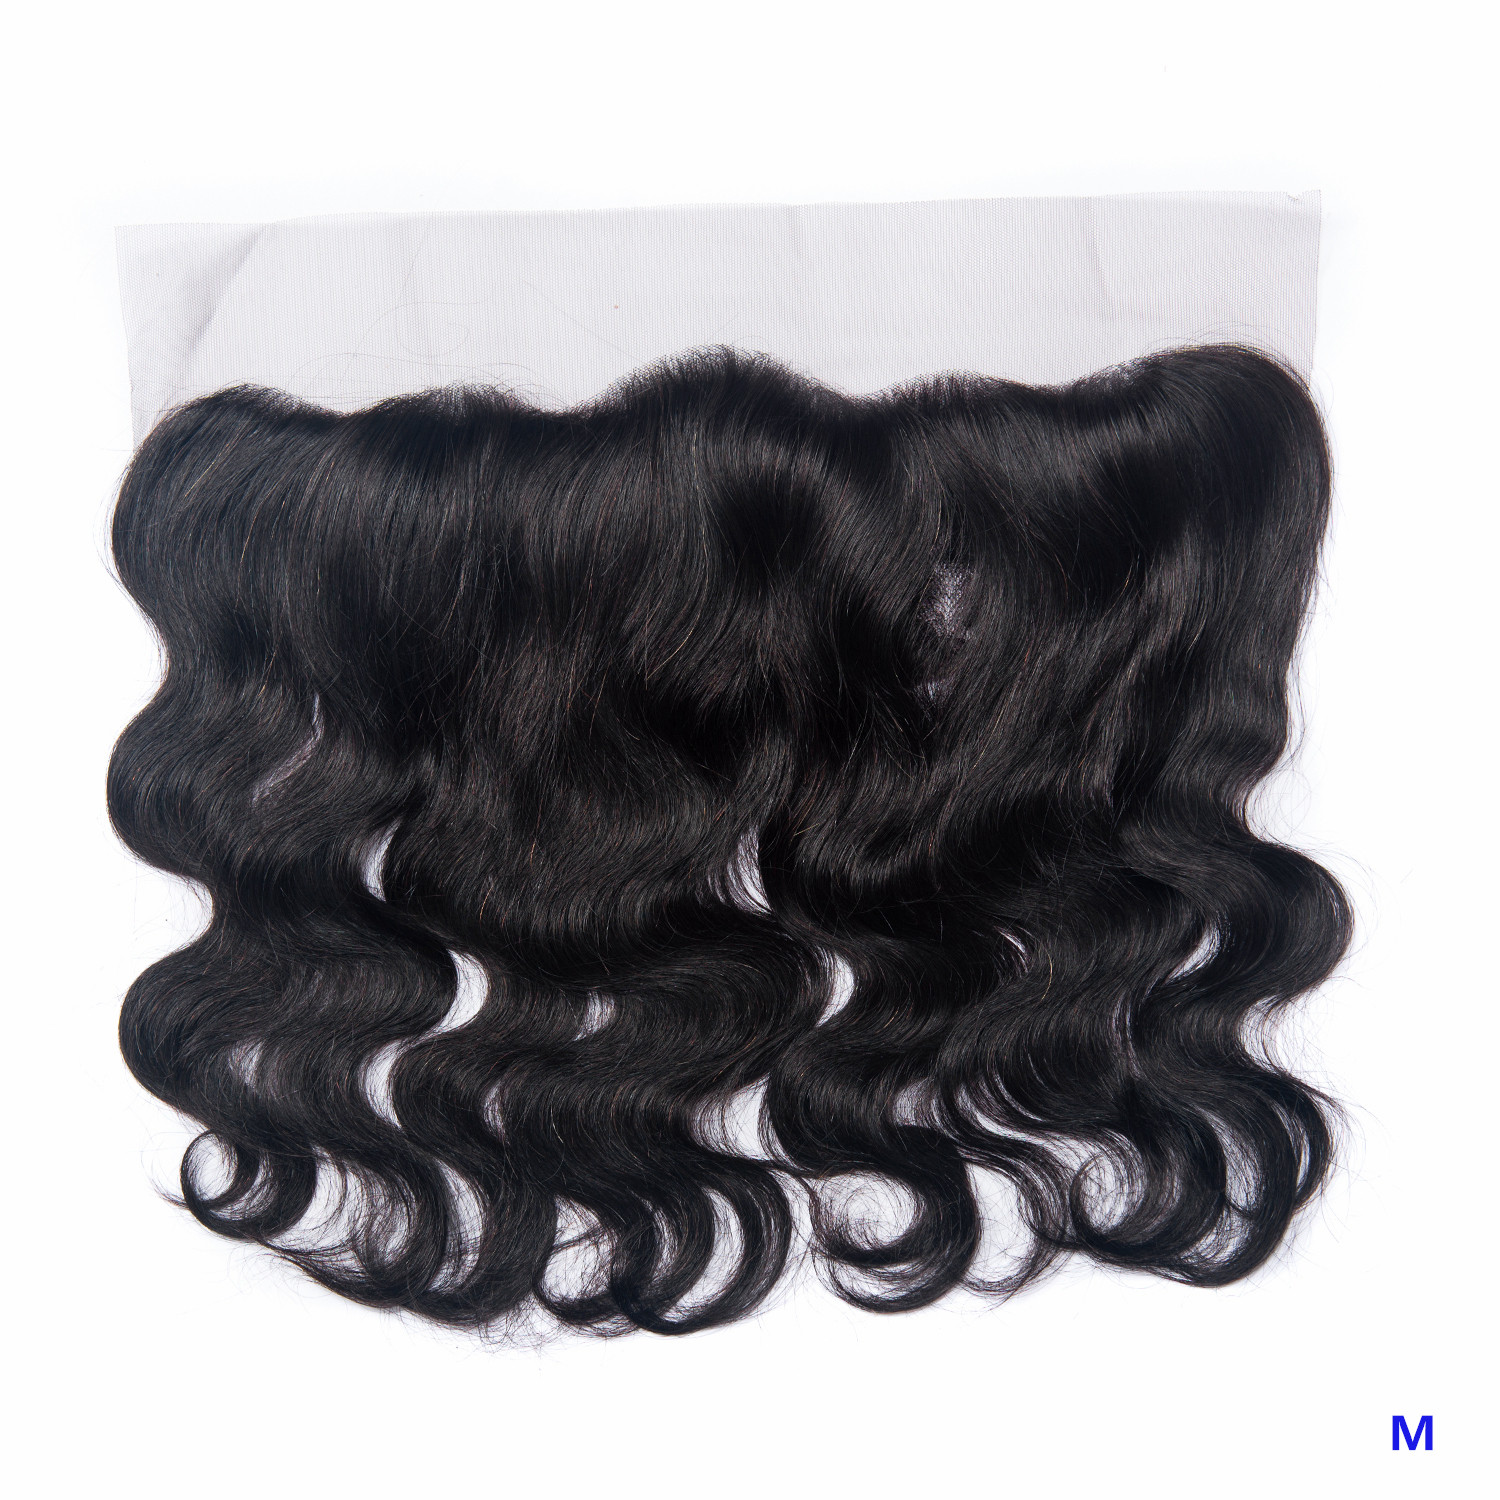 OYM HAIR Brazilian Body Wave Hair Frontal Closure Middle Ratio Human Hair 8-20 Inch 13x4 Lace Frontal Non-Remy Hair Extension